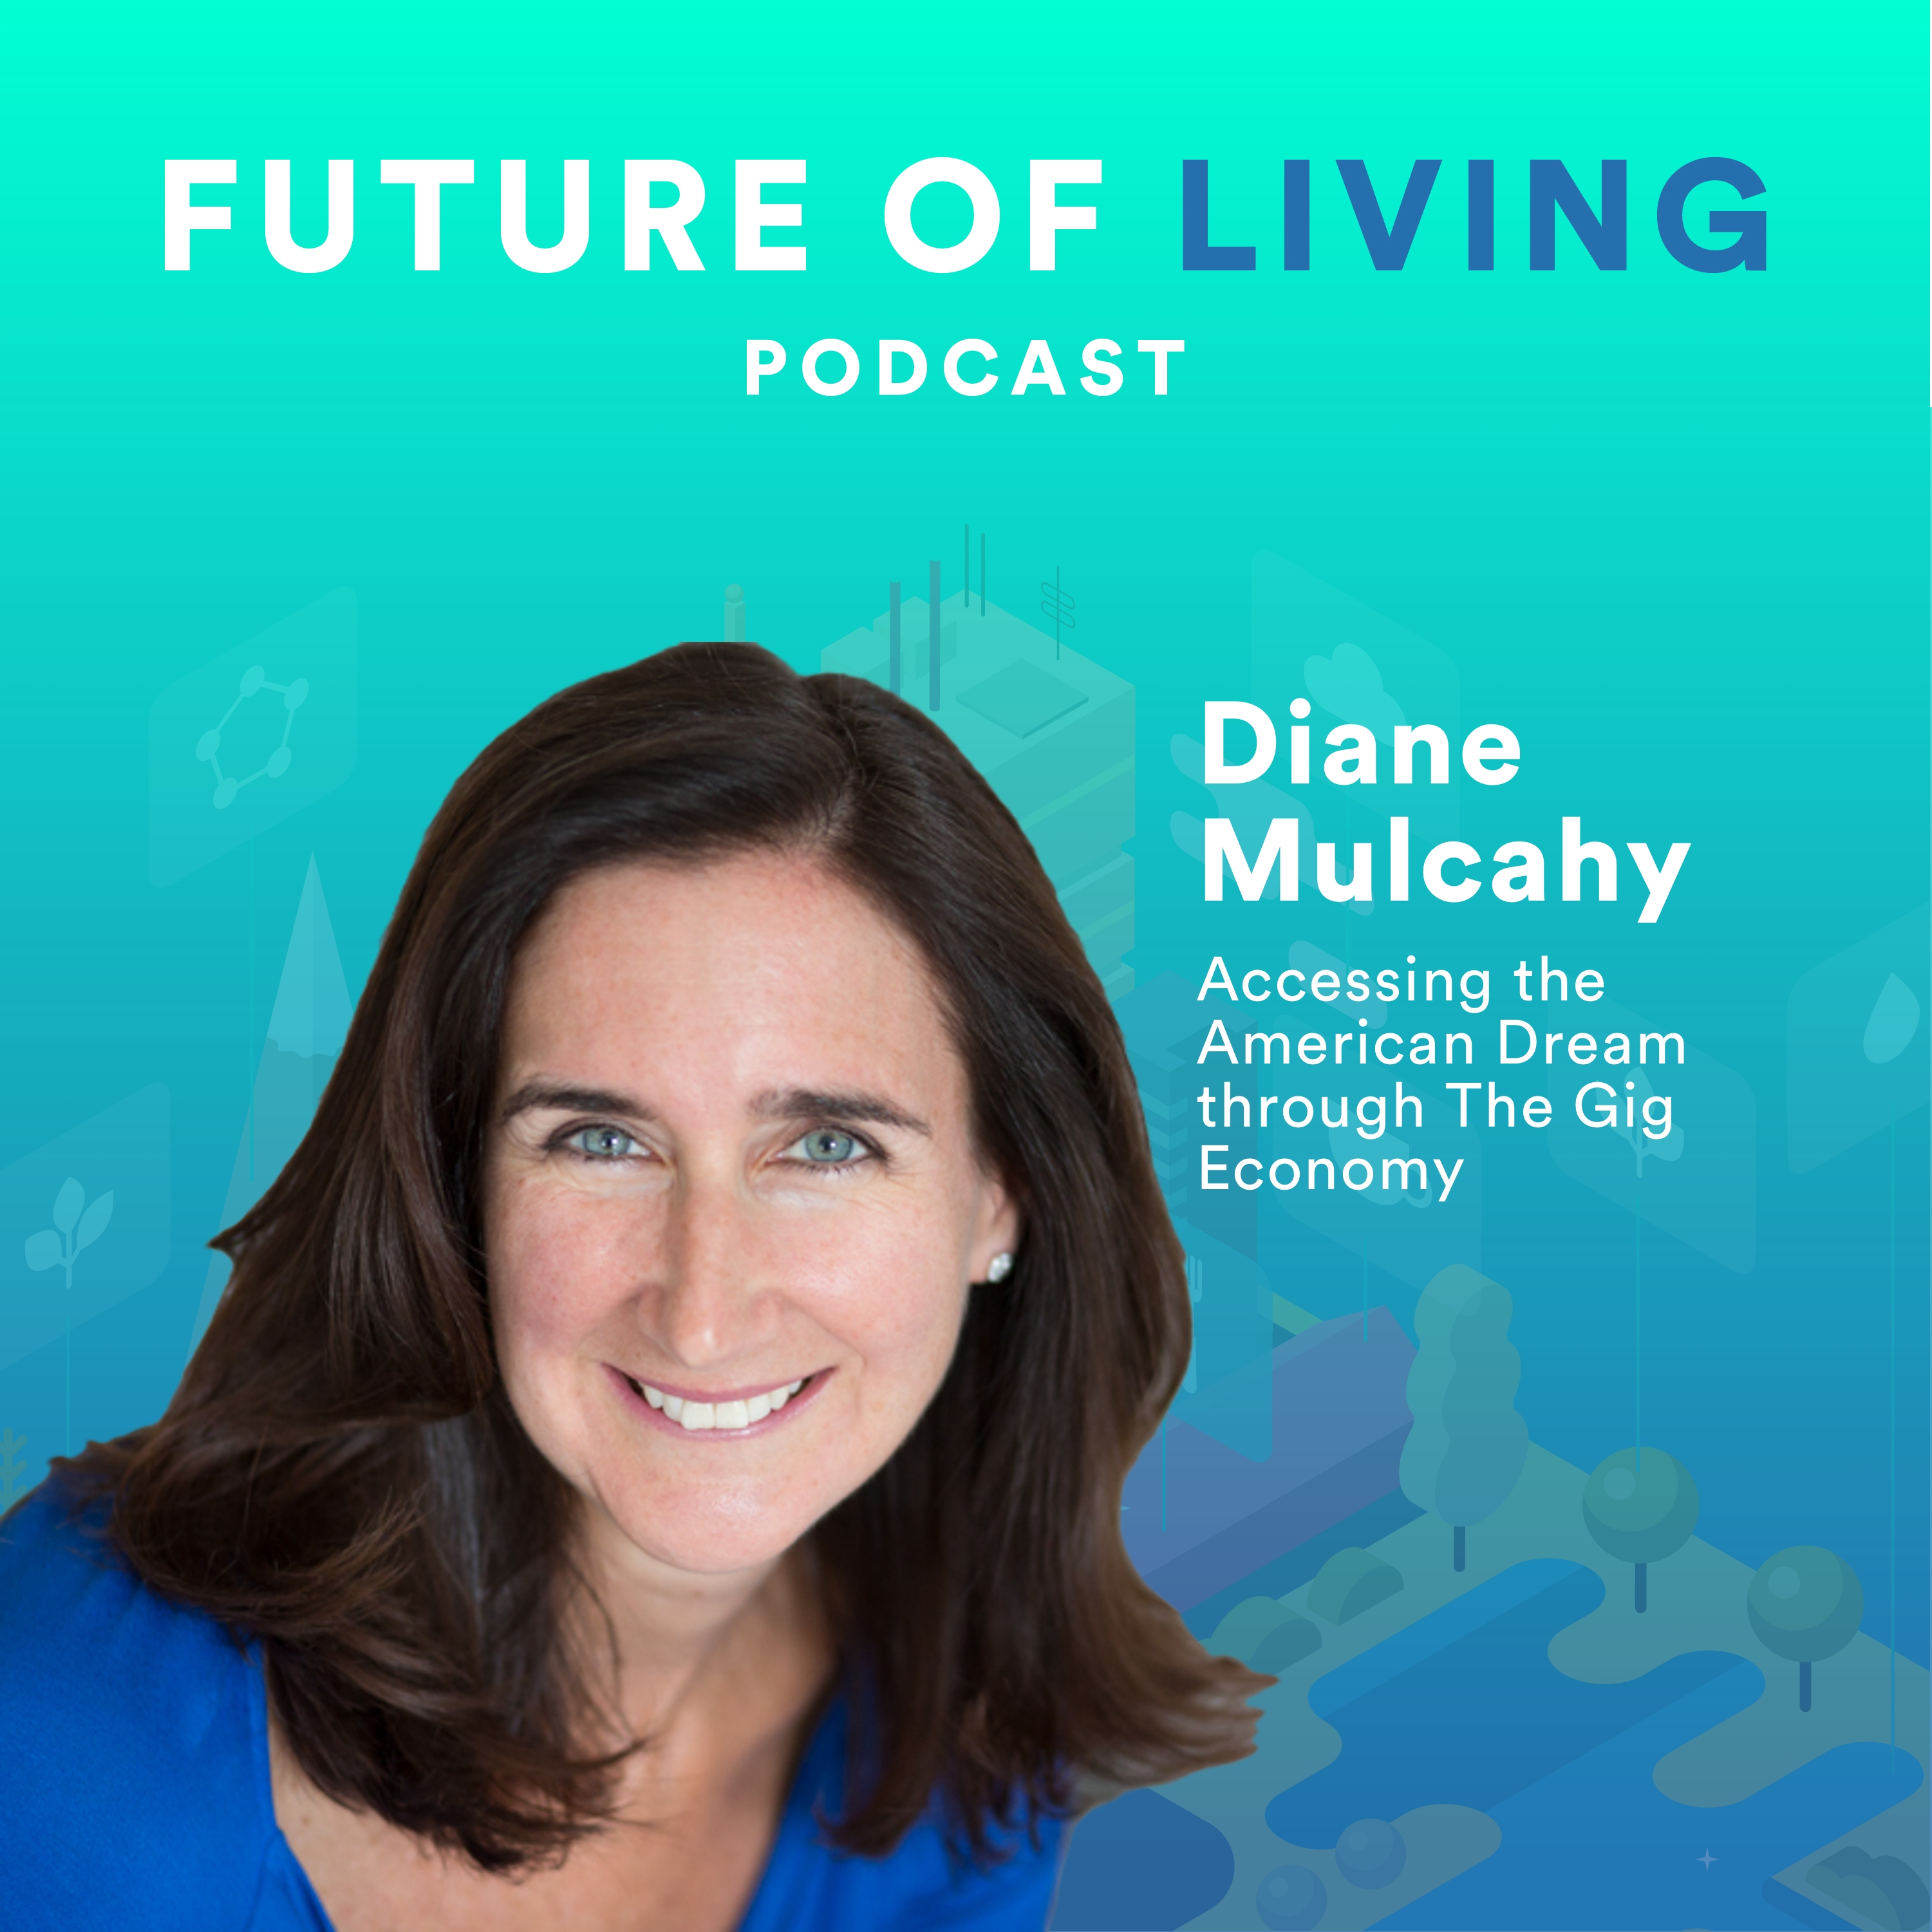 Diane Mulcahy on Accessing the American Dream Through The Gig Economy